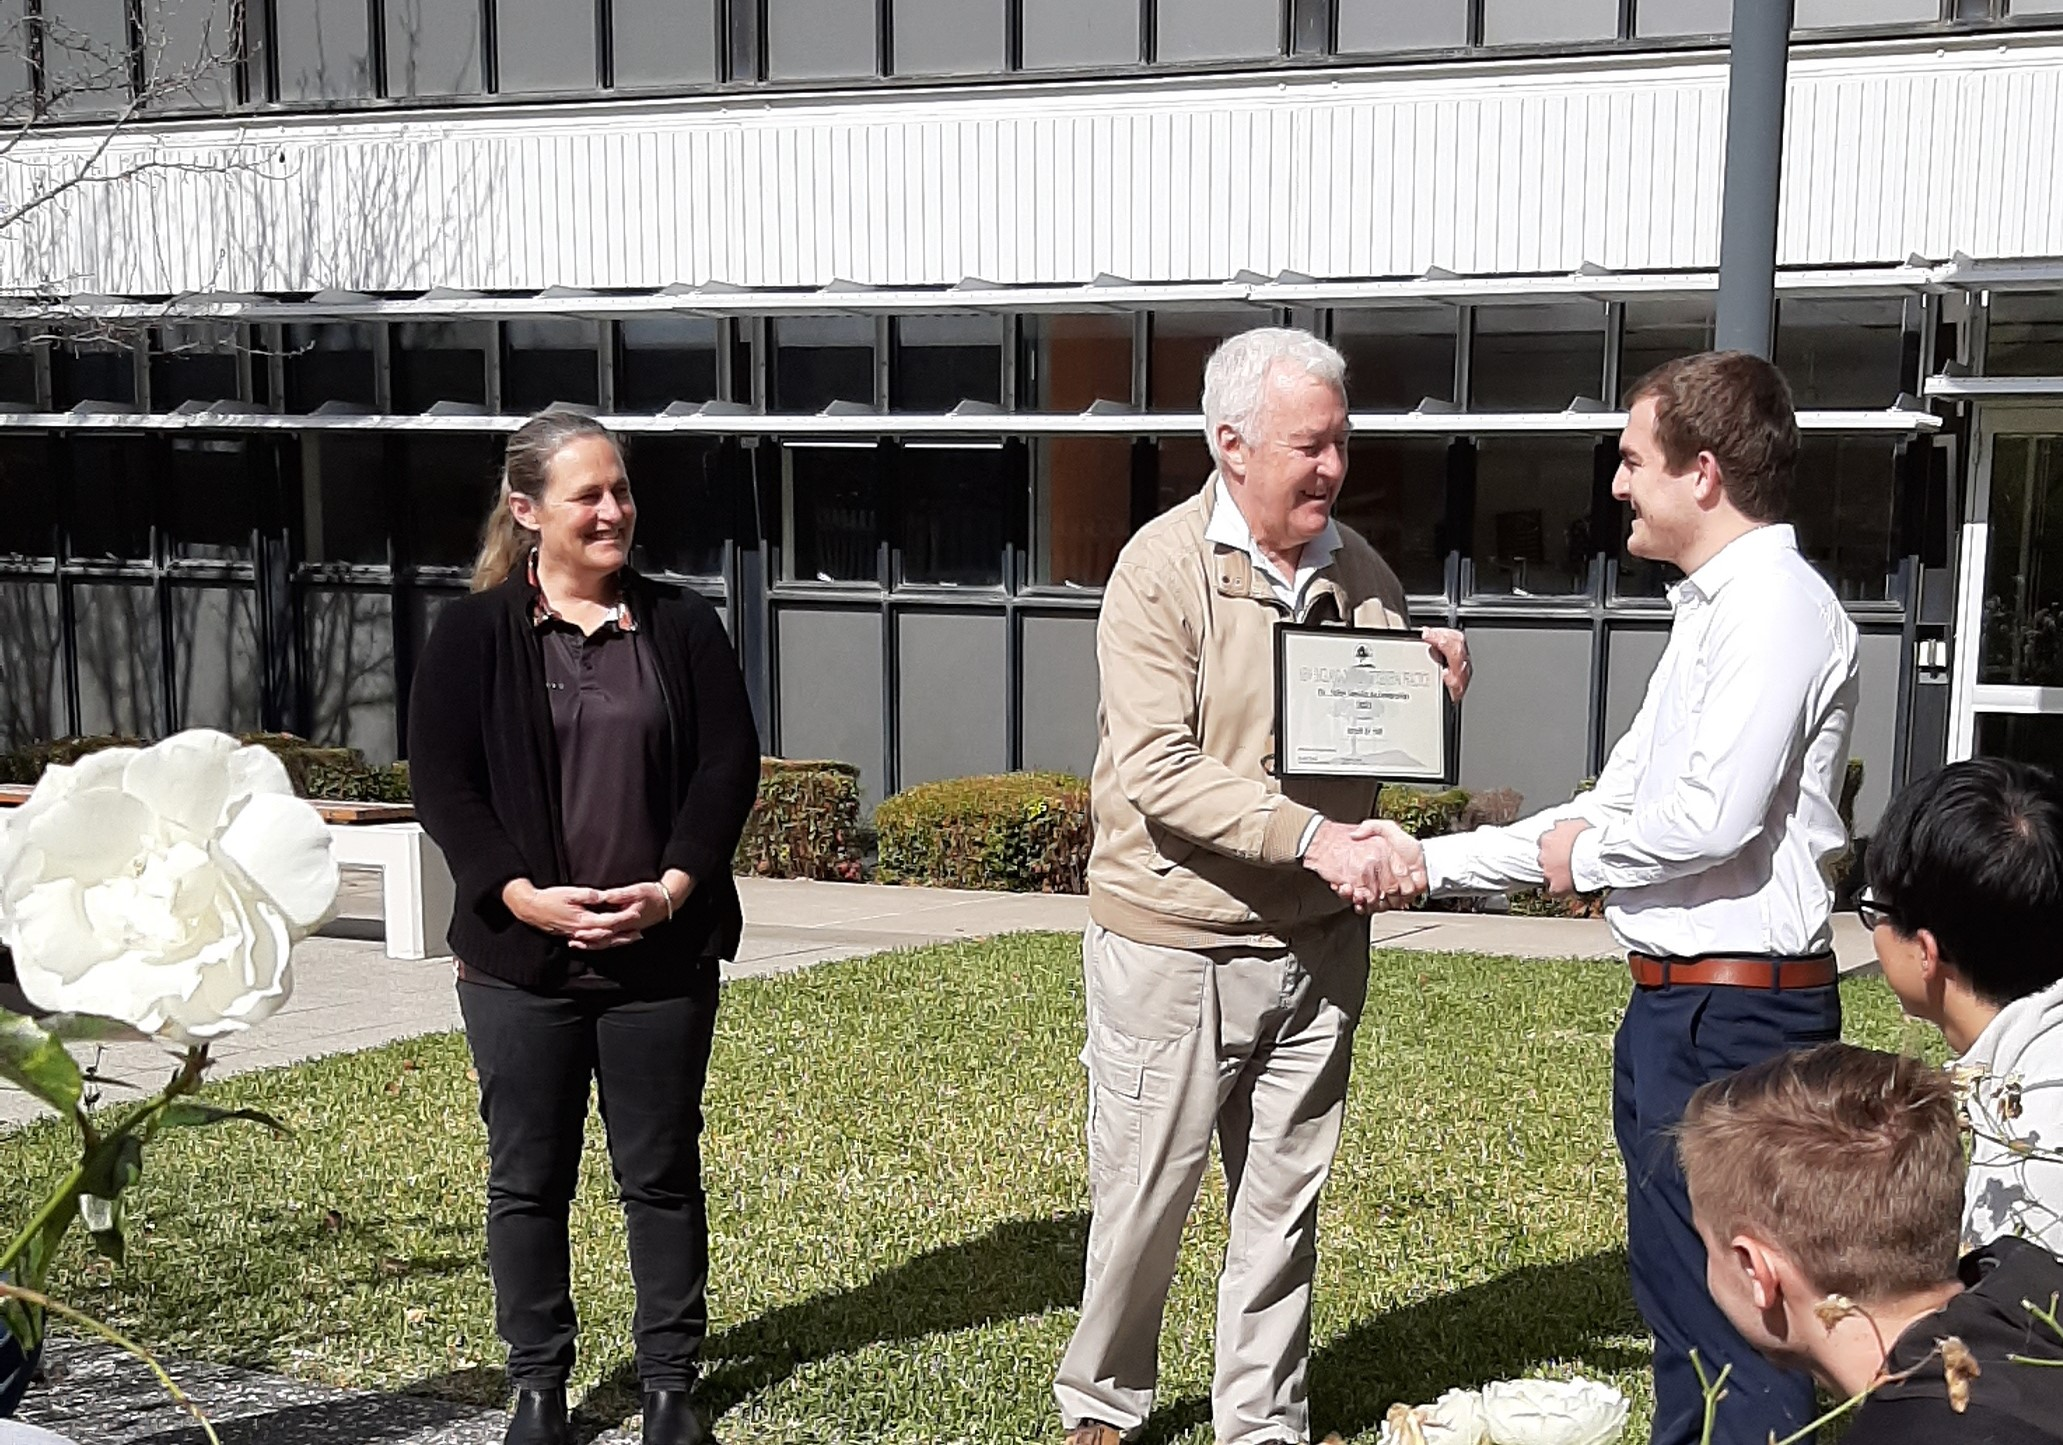 Matt St Hill receiving his award from Dr John Nevin and Dr Michelle Guppy in 2021